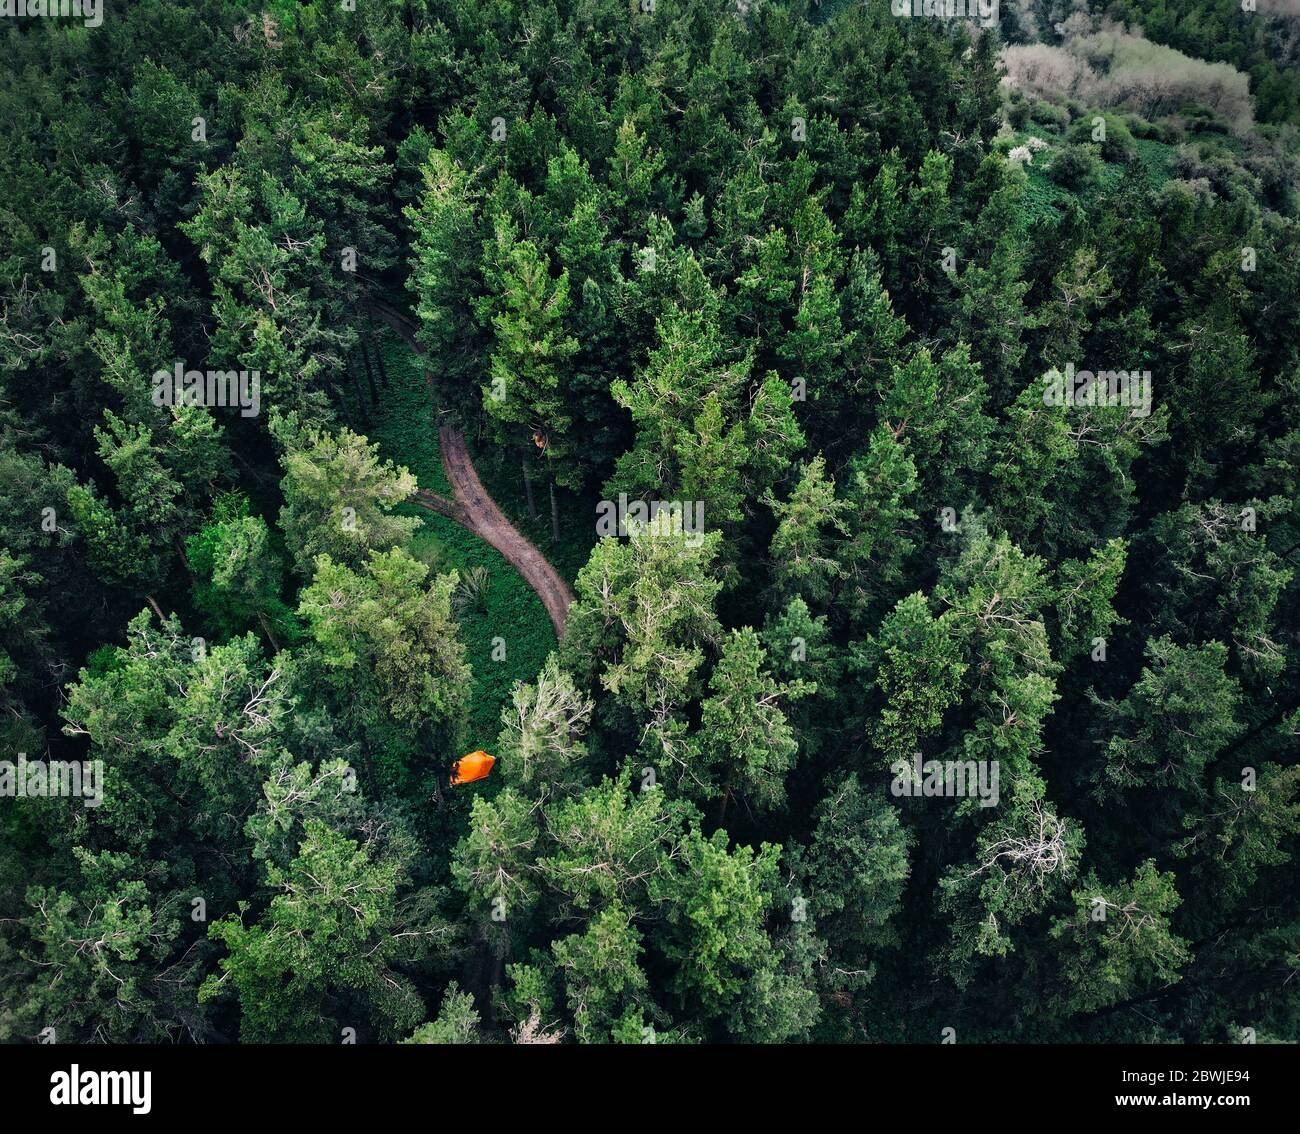 Aerial view of orange tent at forest in the mountains. Photo taken with Drone Stock Photo